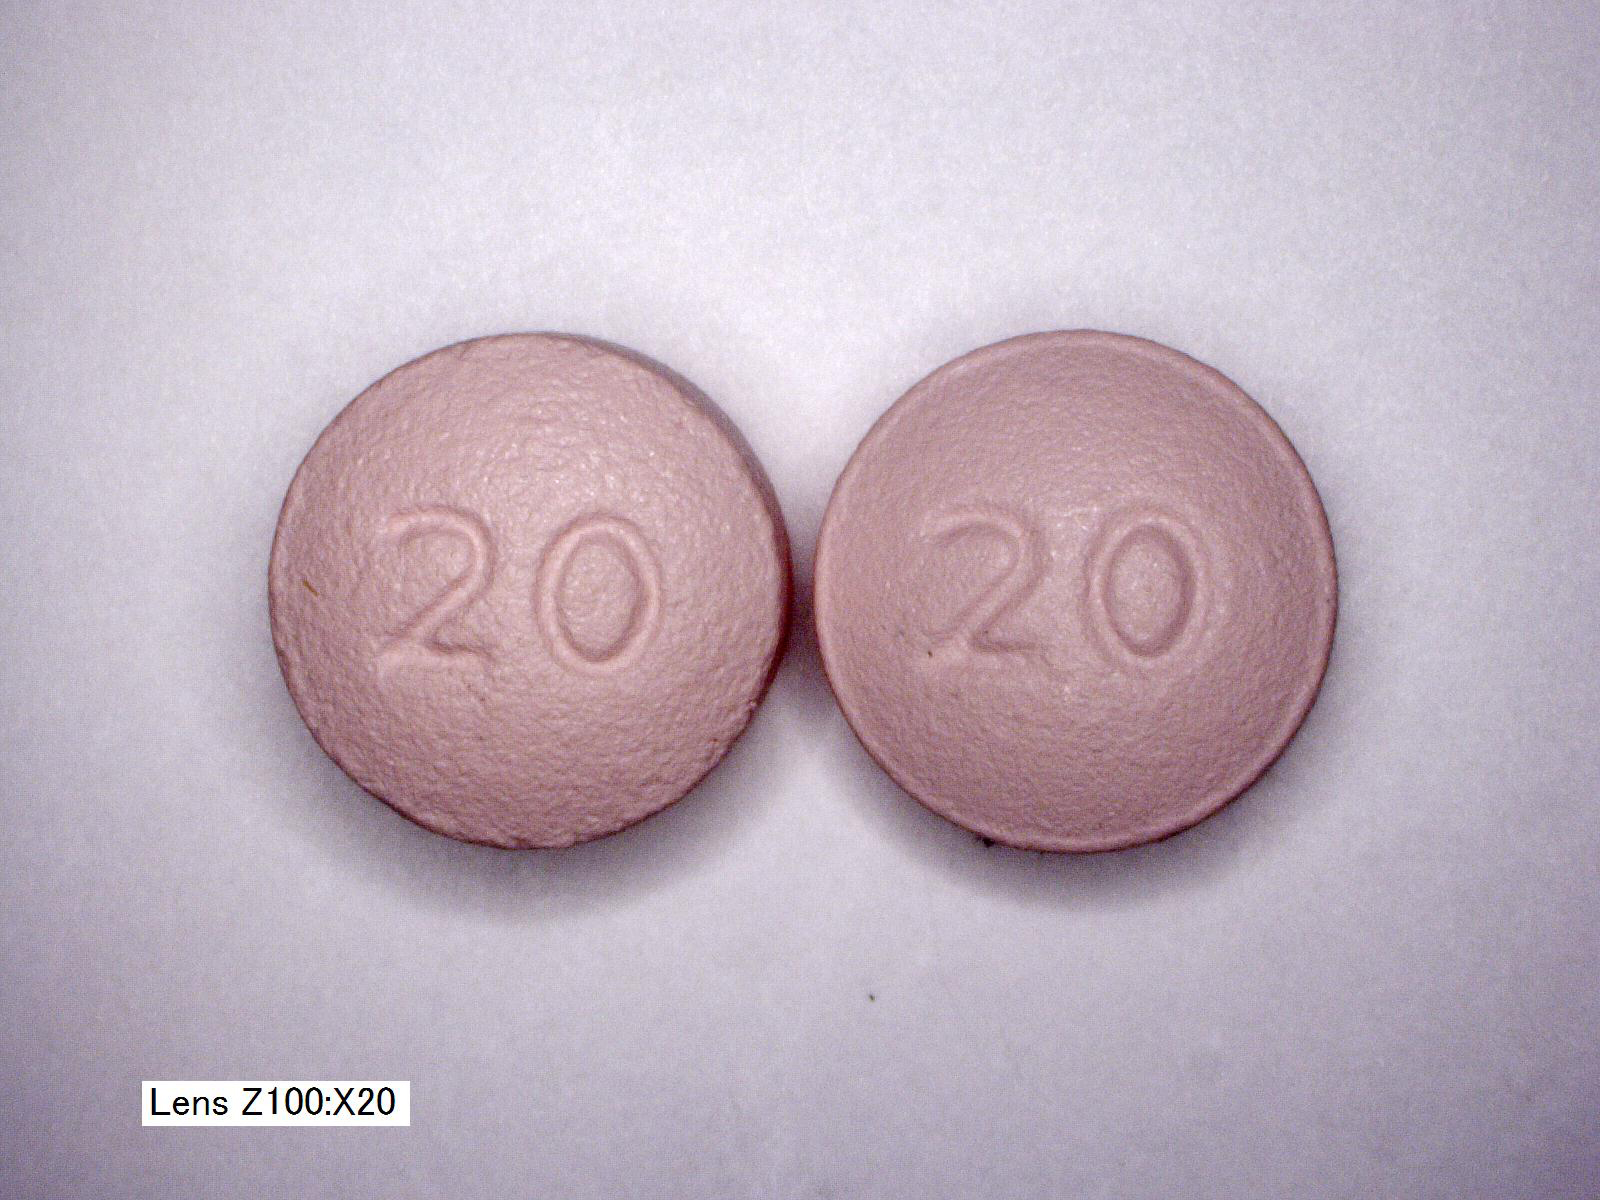 oxycodone addiction forum